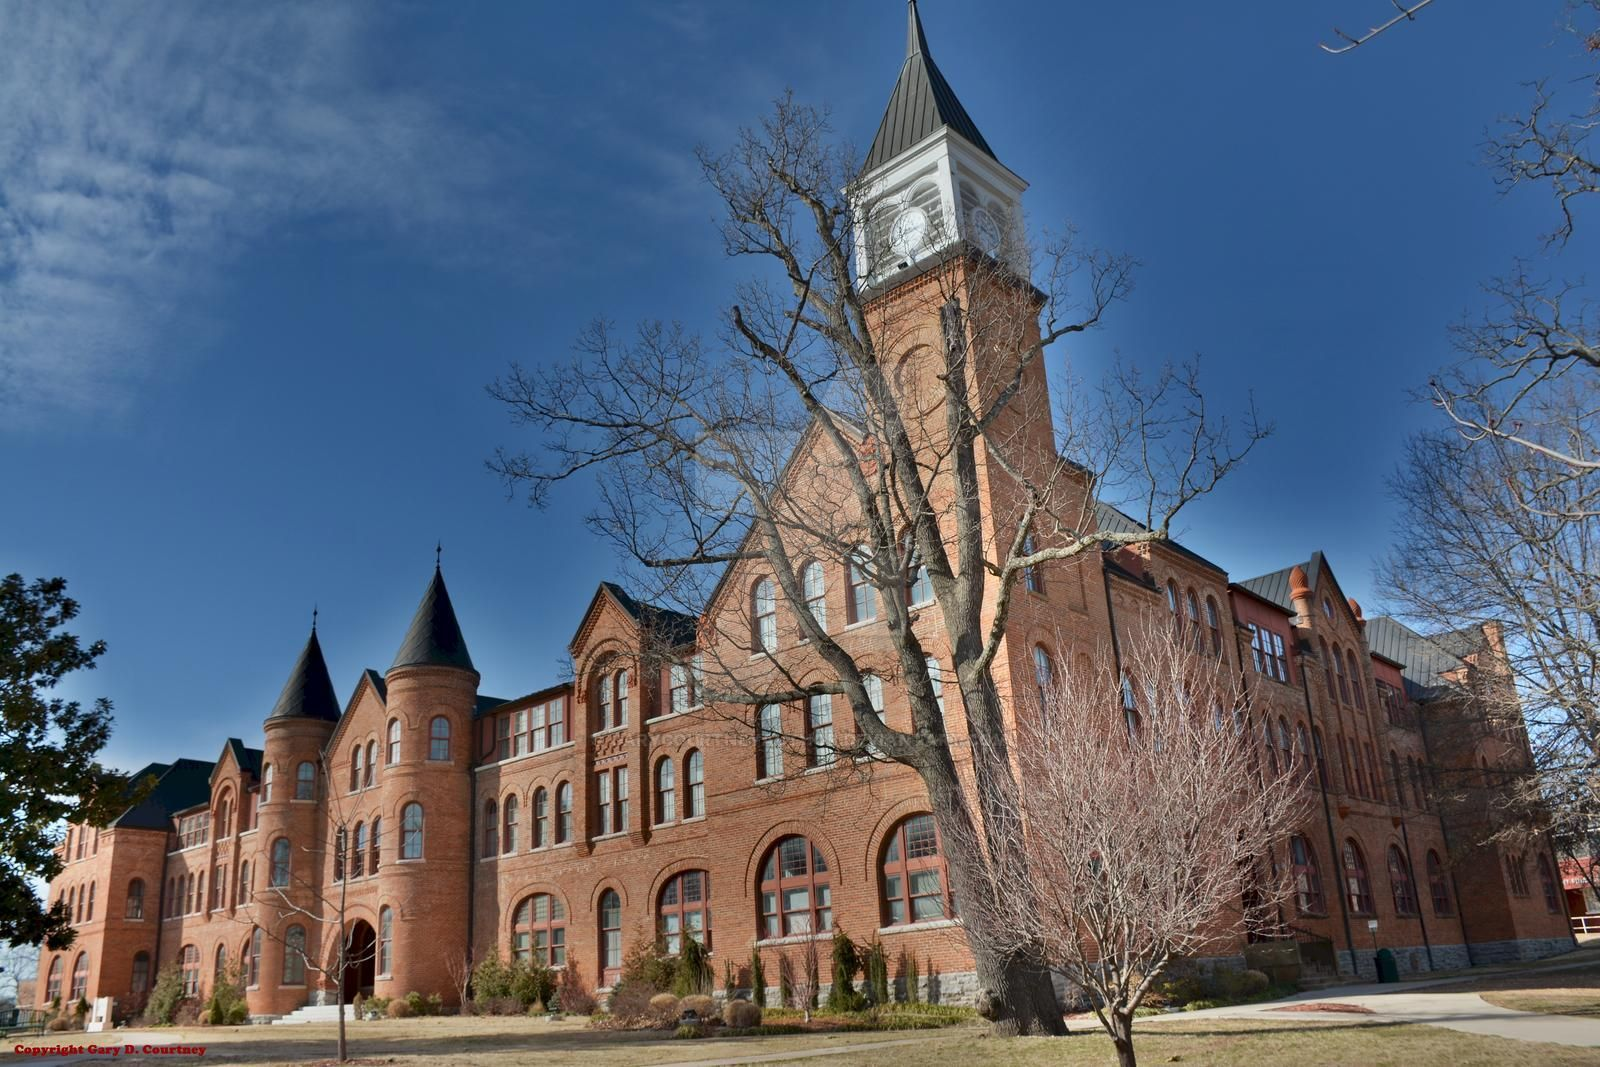 seminary_hall__at_northeastern_state_university_by_garycourtneyauthor_d9vxxxq-fullview.jpg